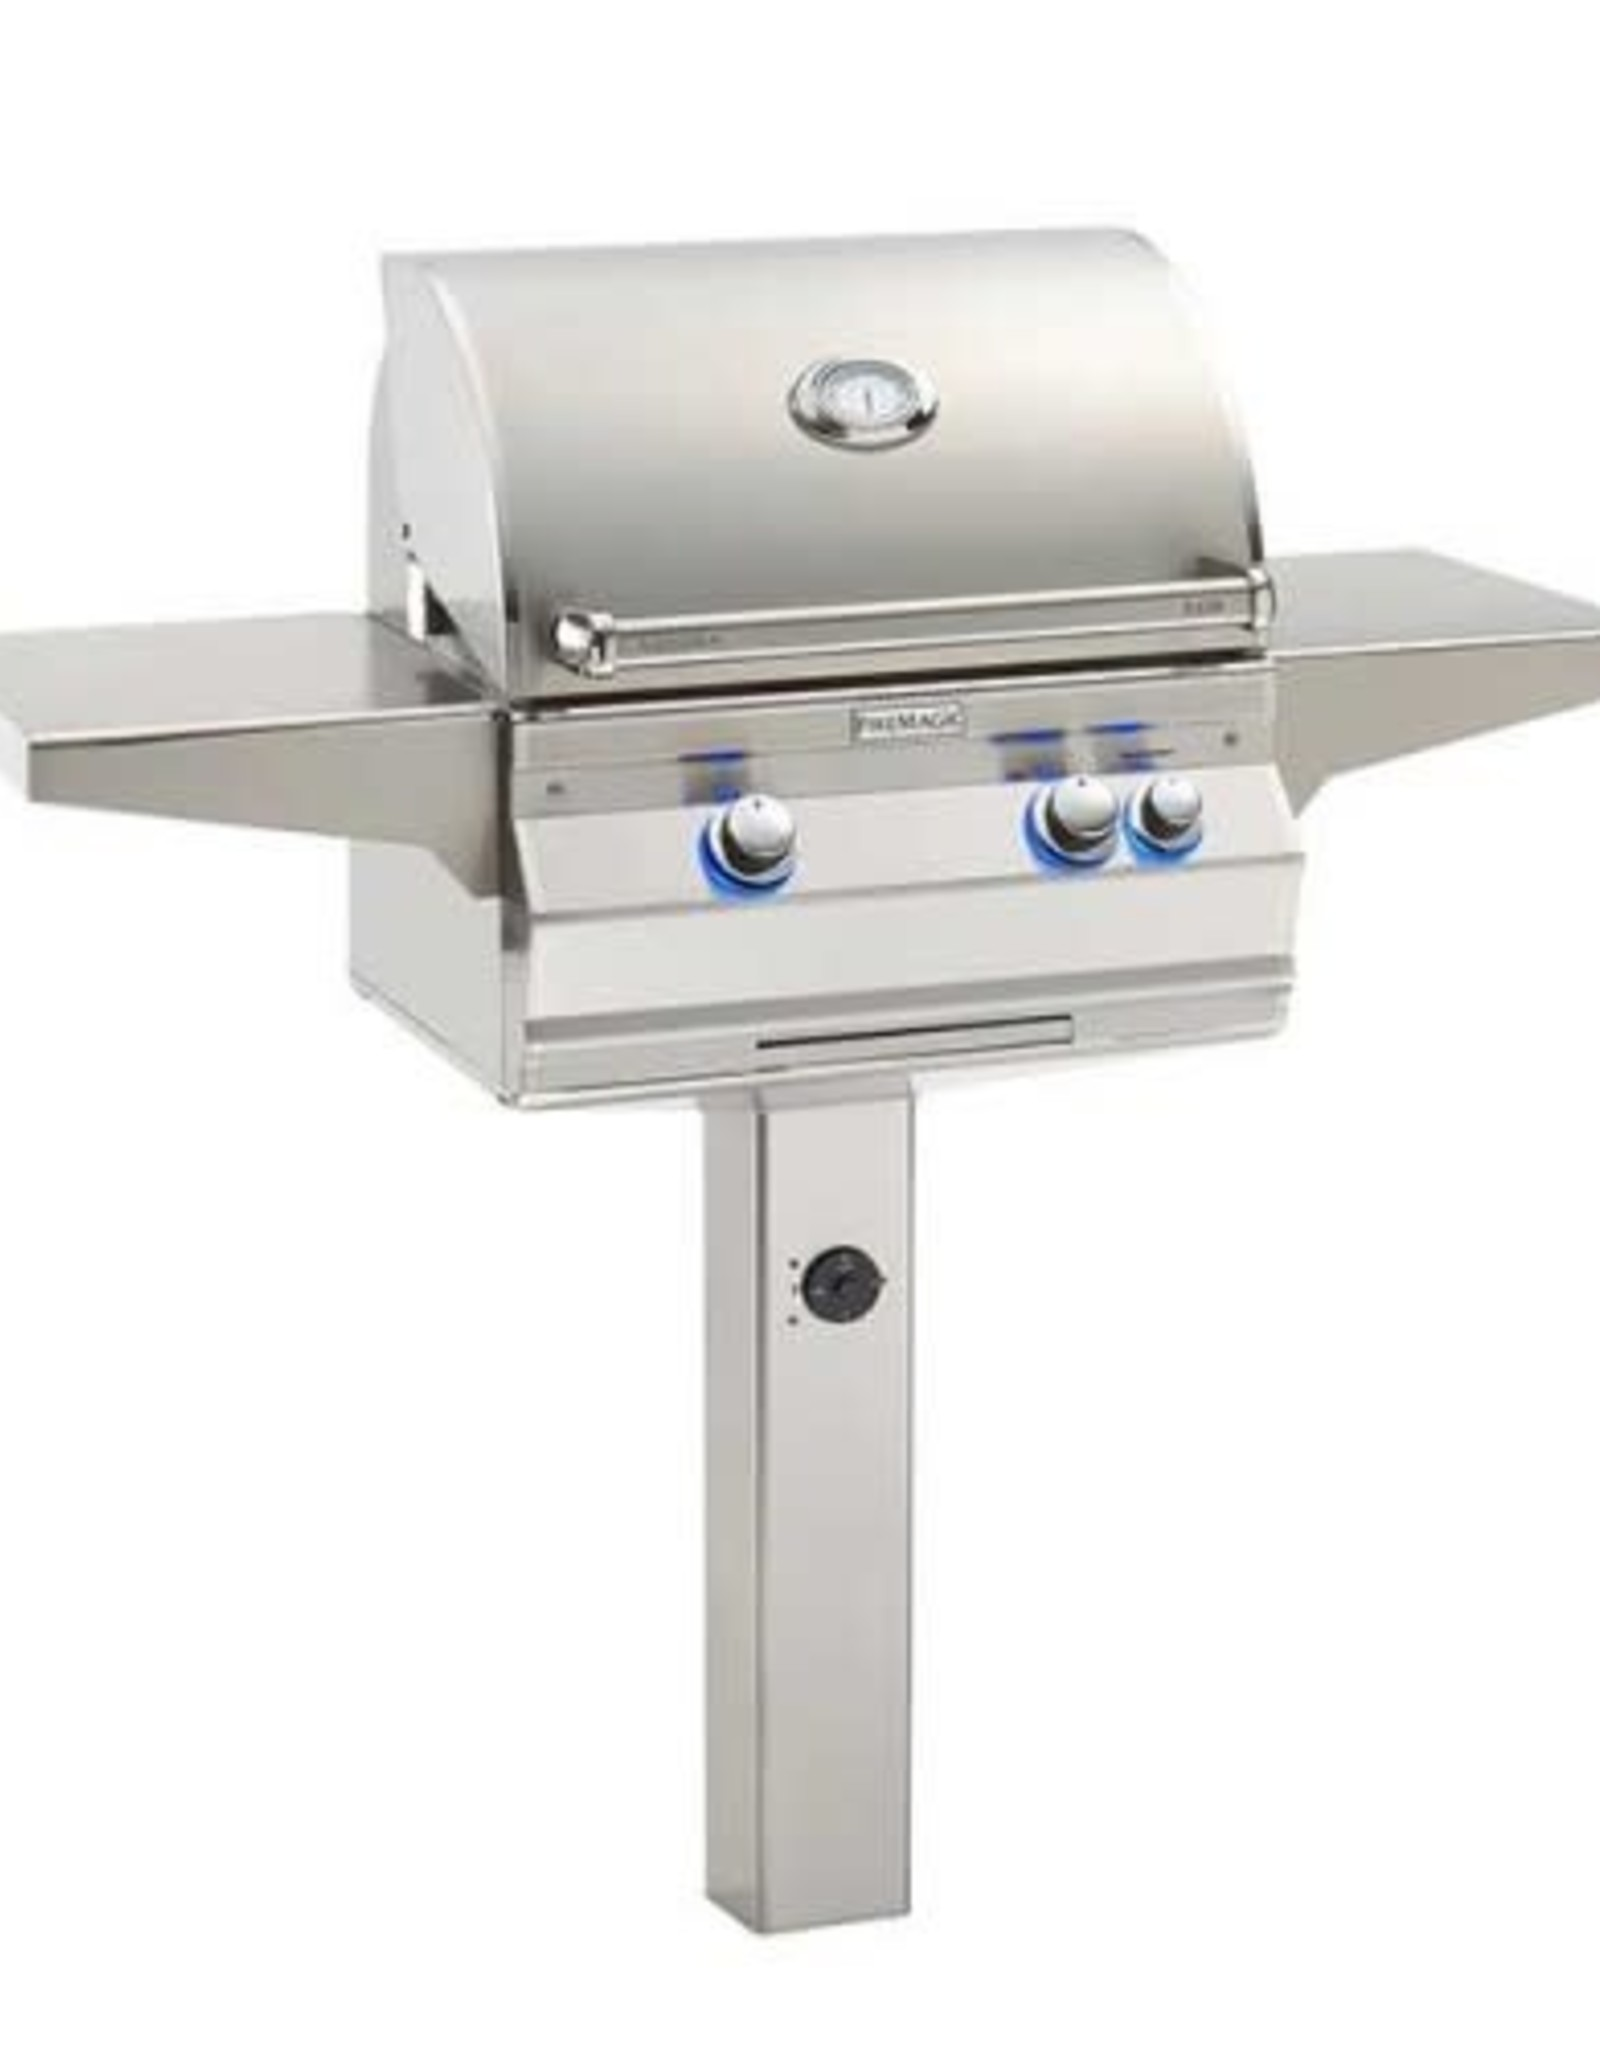 Fire Magic Fire Magic - Aurora A430s 24-inch In Ground Post Mount Grill Without Rotisserie